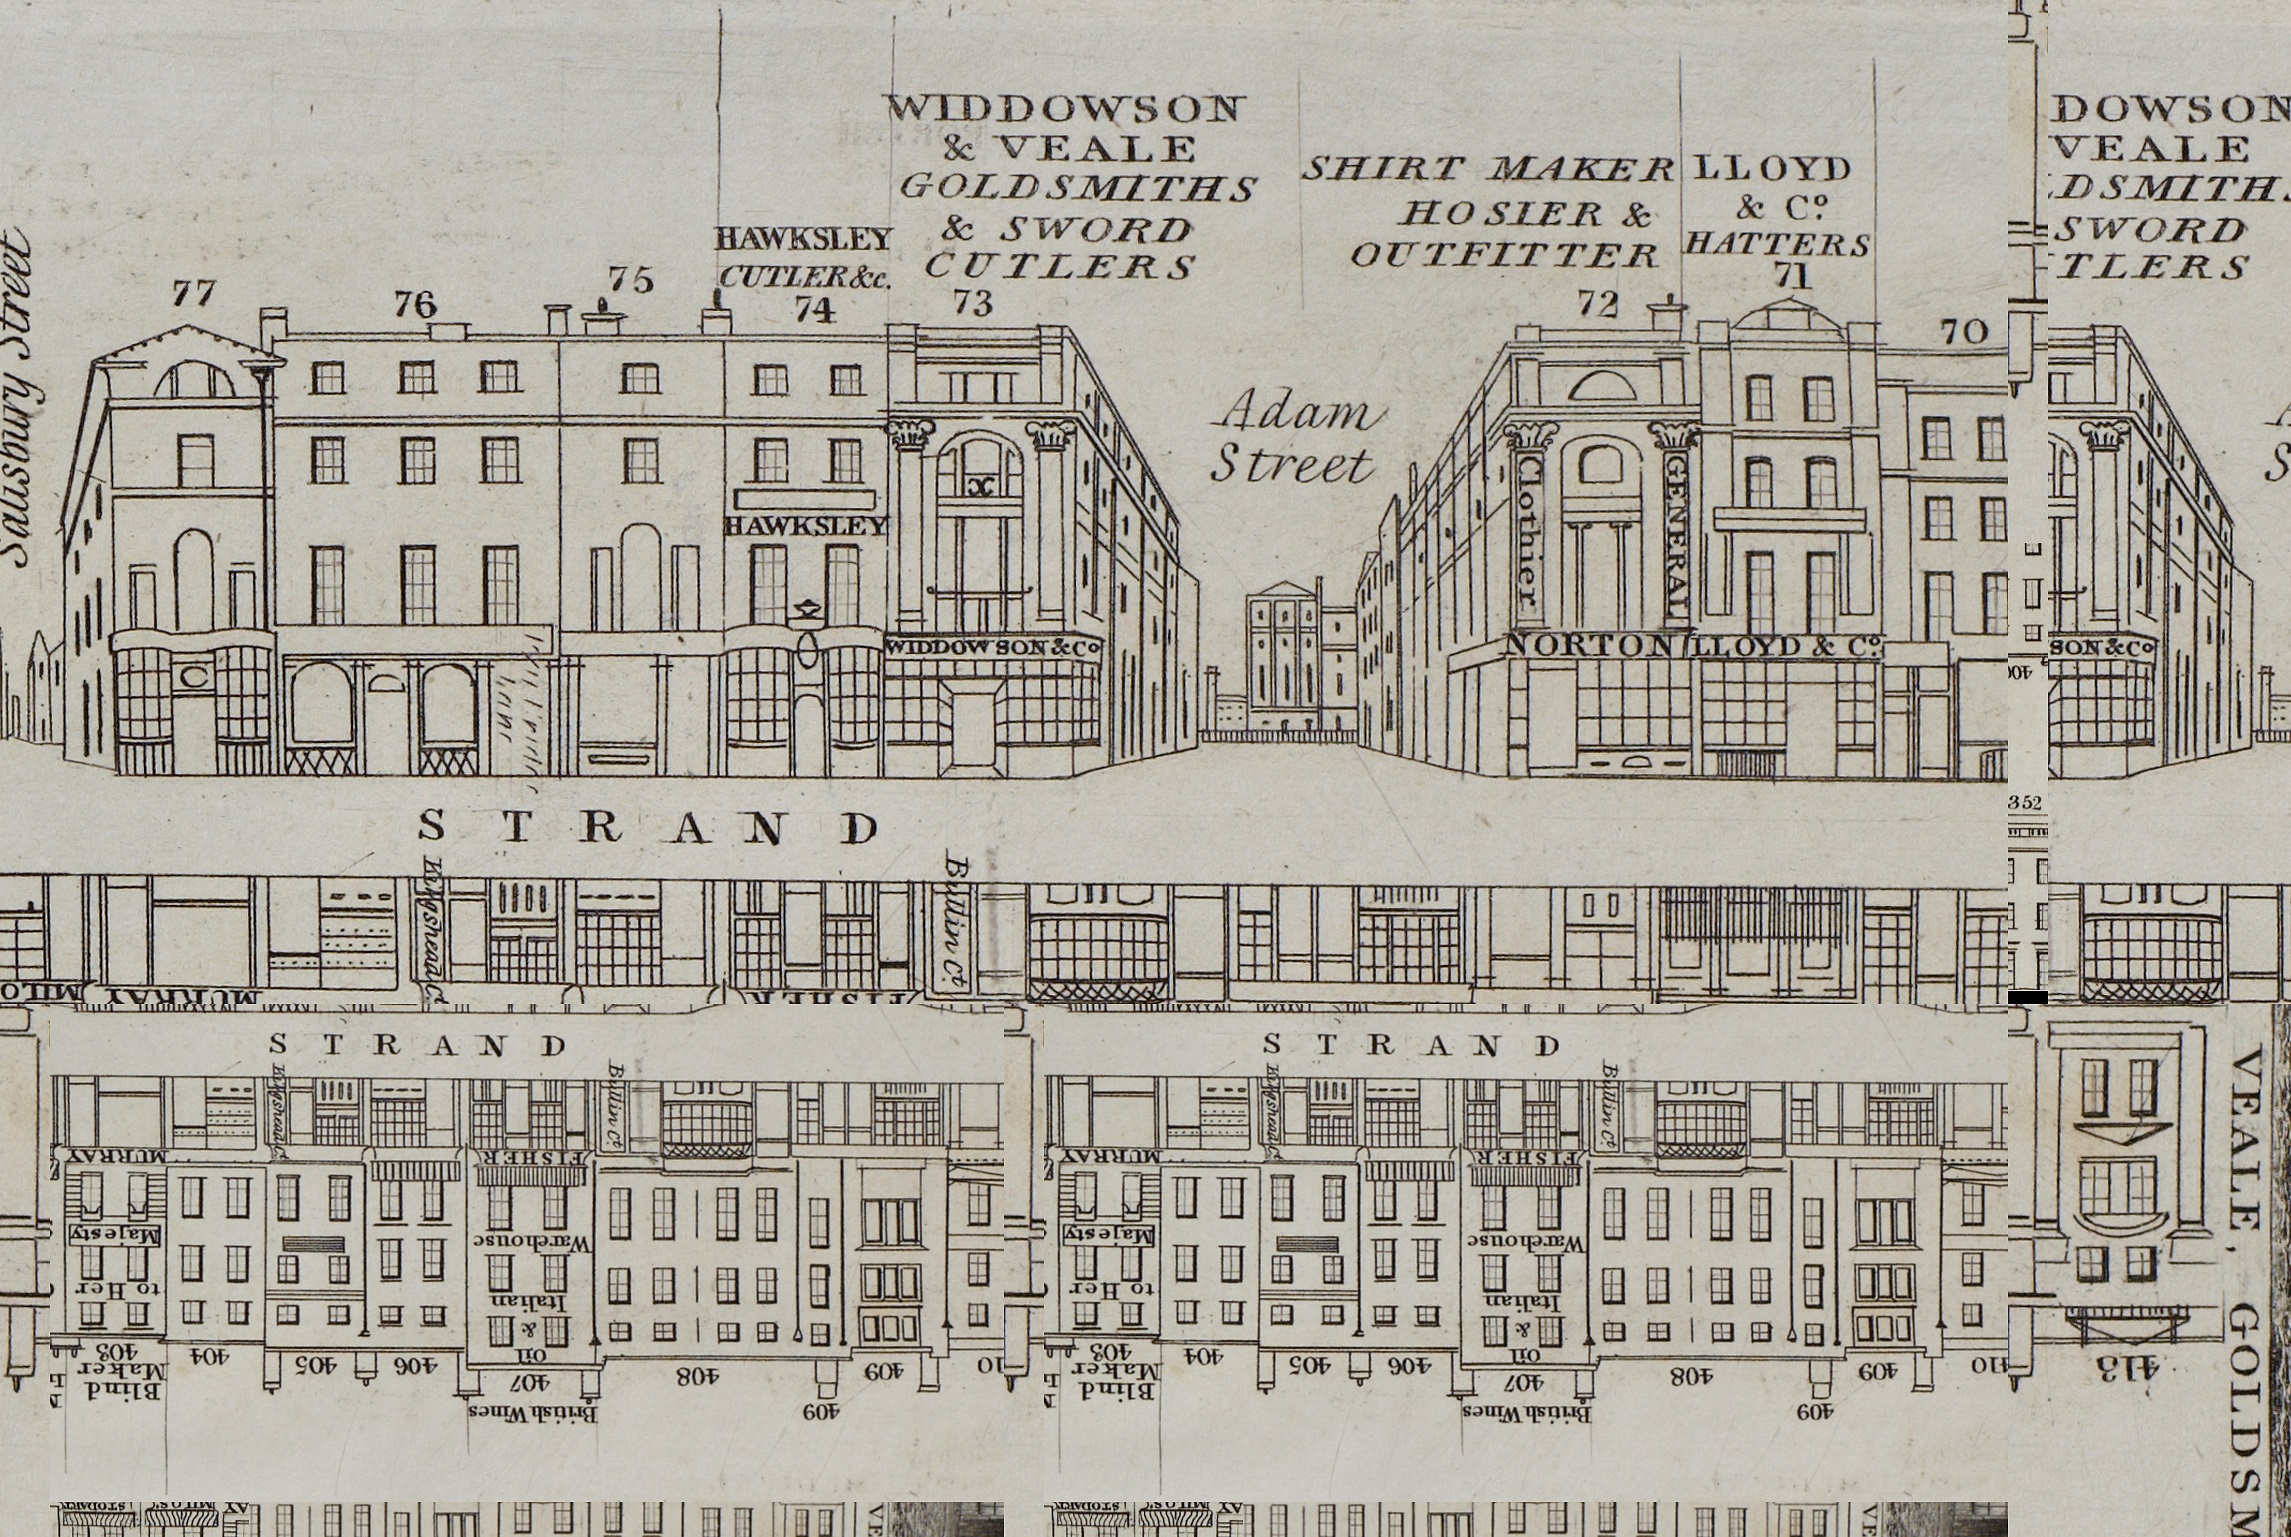 Widdowson & Veale on the Strand